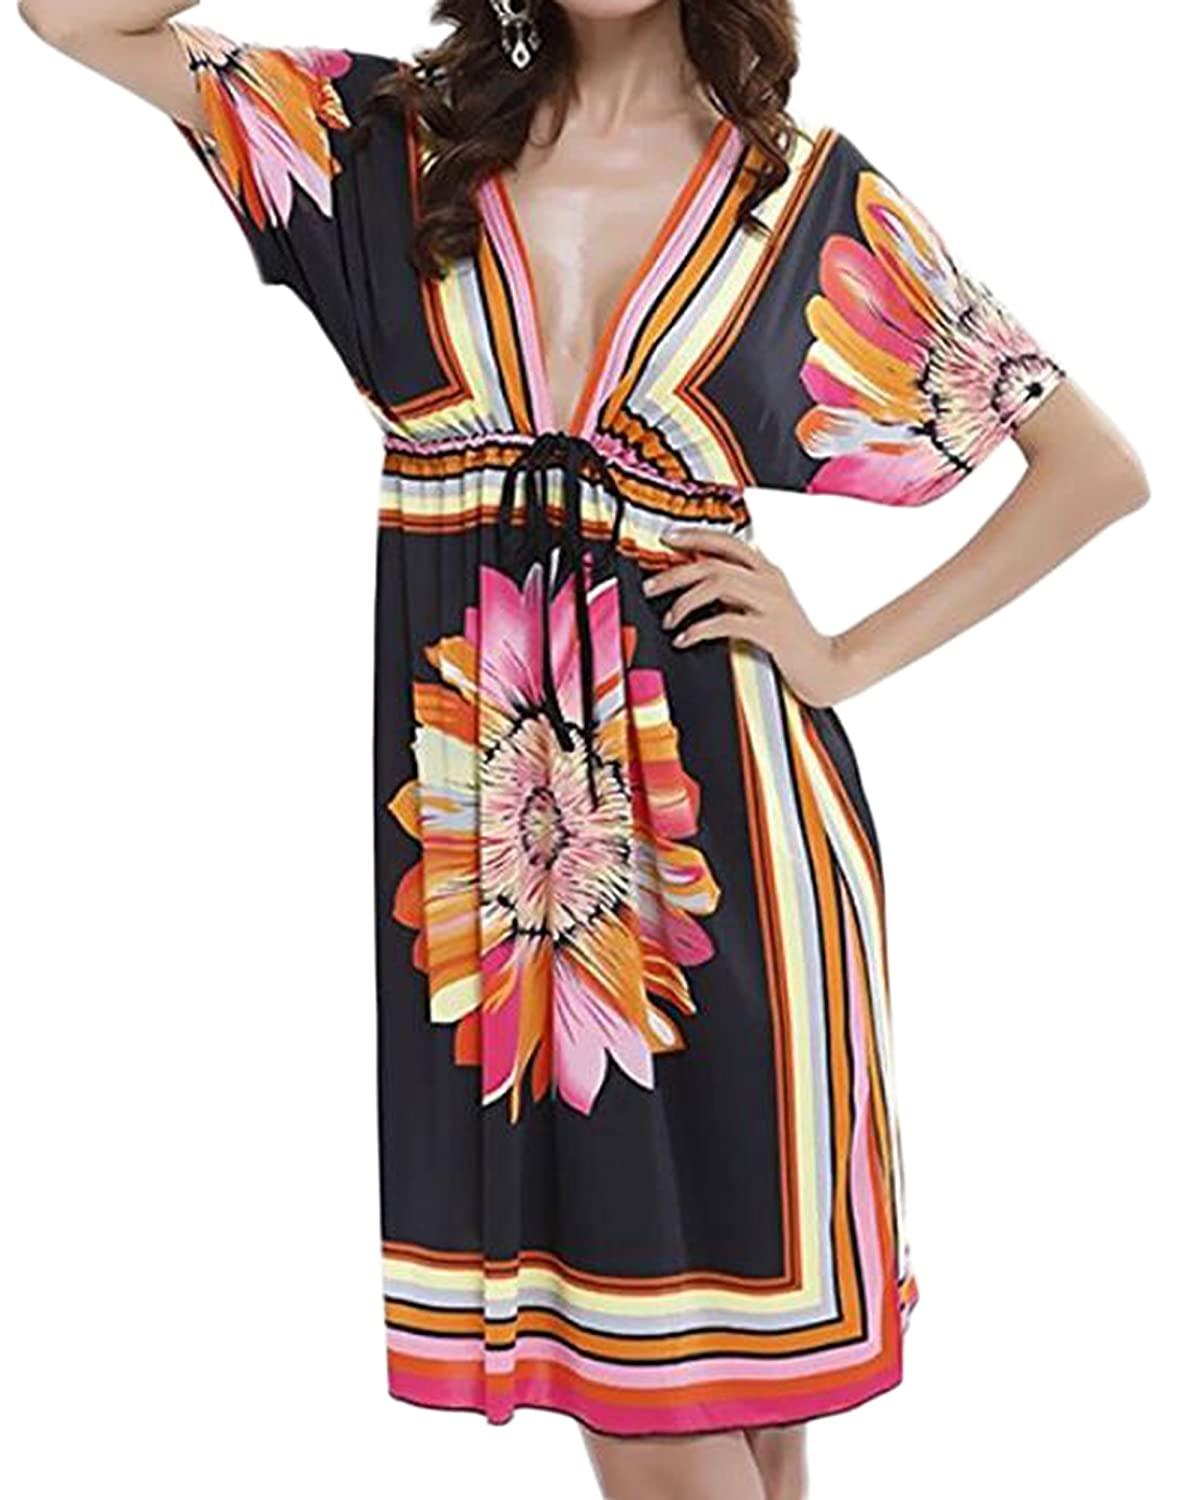 47f5bbf0c4 Fits size US 4-16. FEATURES: Sexy deep v-neck, adjustable waistband, flora  print, cool fabric and loose style. OCCASIONS: Summer beach wear ...